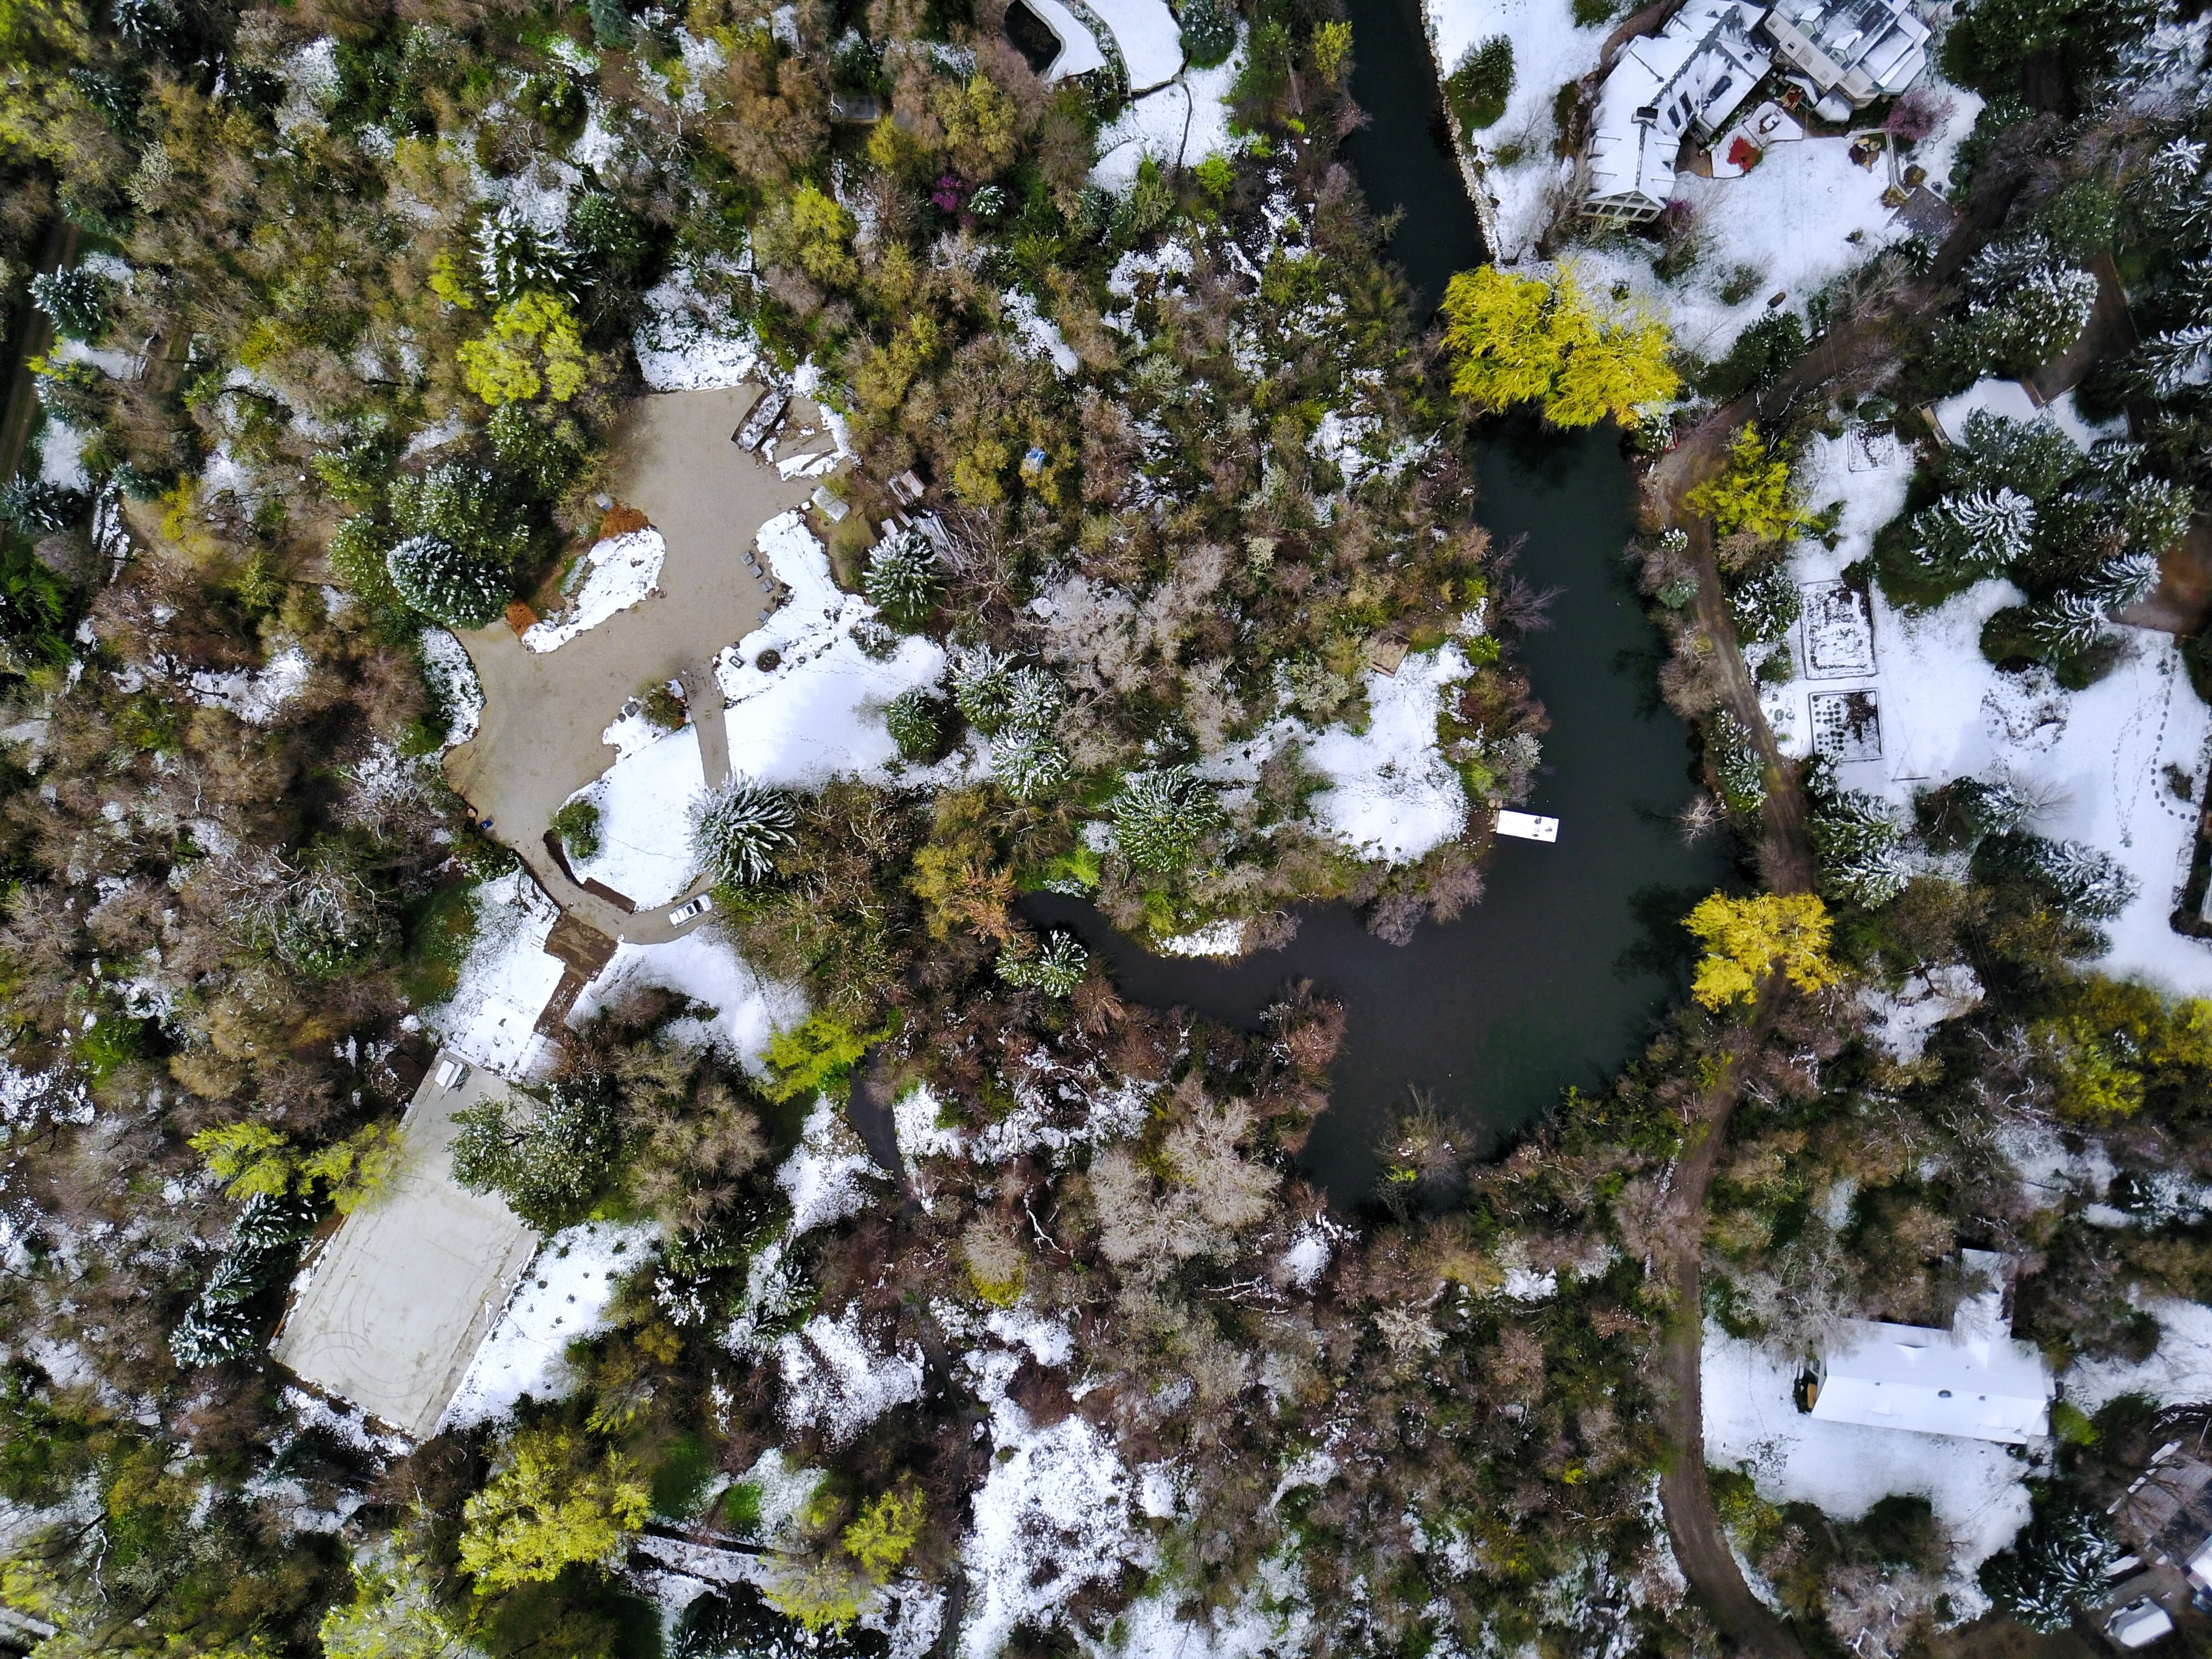 A drone shot of Salt Lake City, Utah showing trees, water, streets and snow